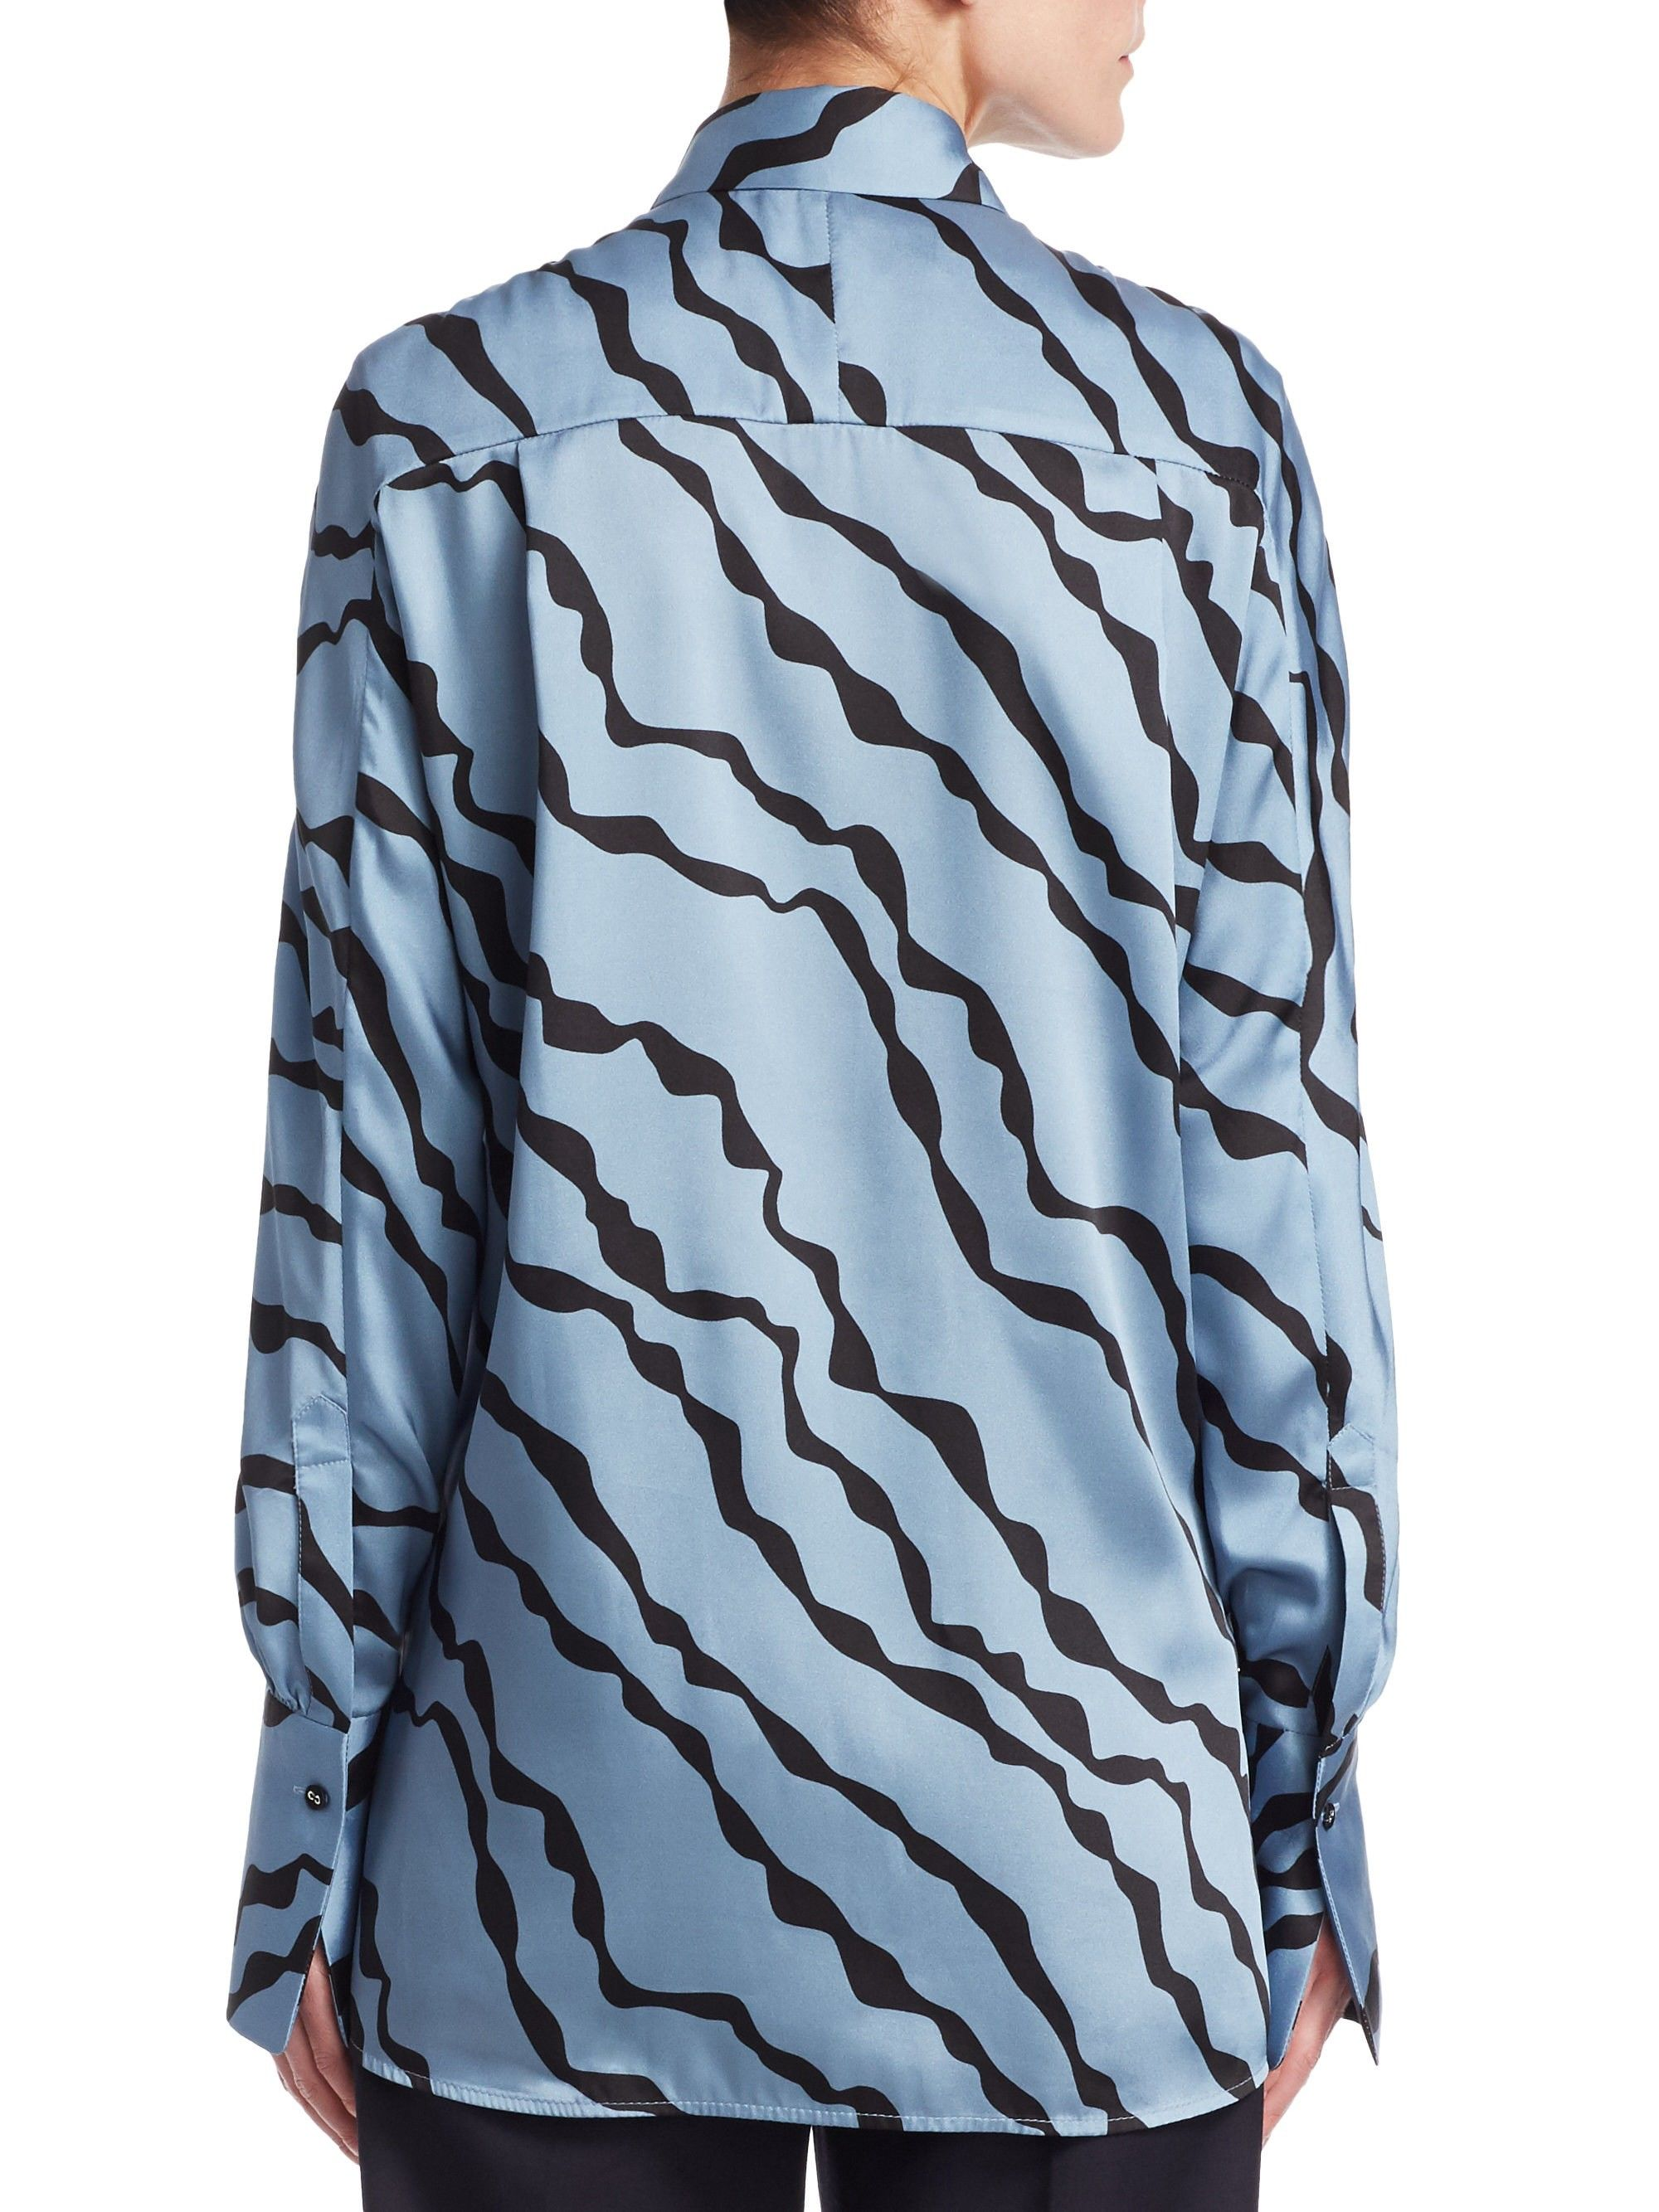 6eb1a6bb5dc Pattern Block Abstract Shirt - Picasso Style Painterly 90s Boxy fit Long  Sleeve Button Down - Womens Small   Products   Picasso style, Pattern  blocks, ...